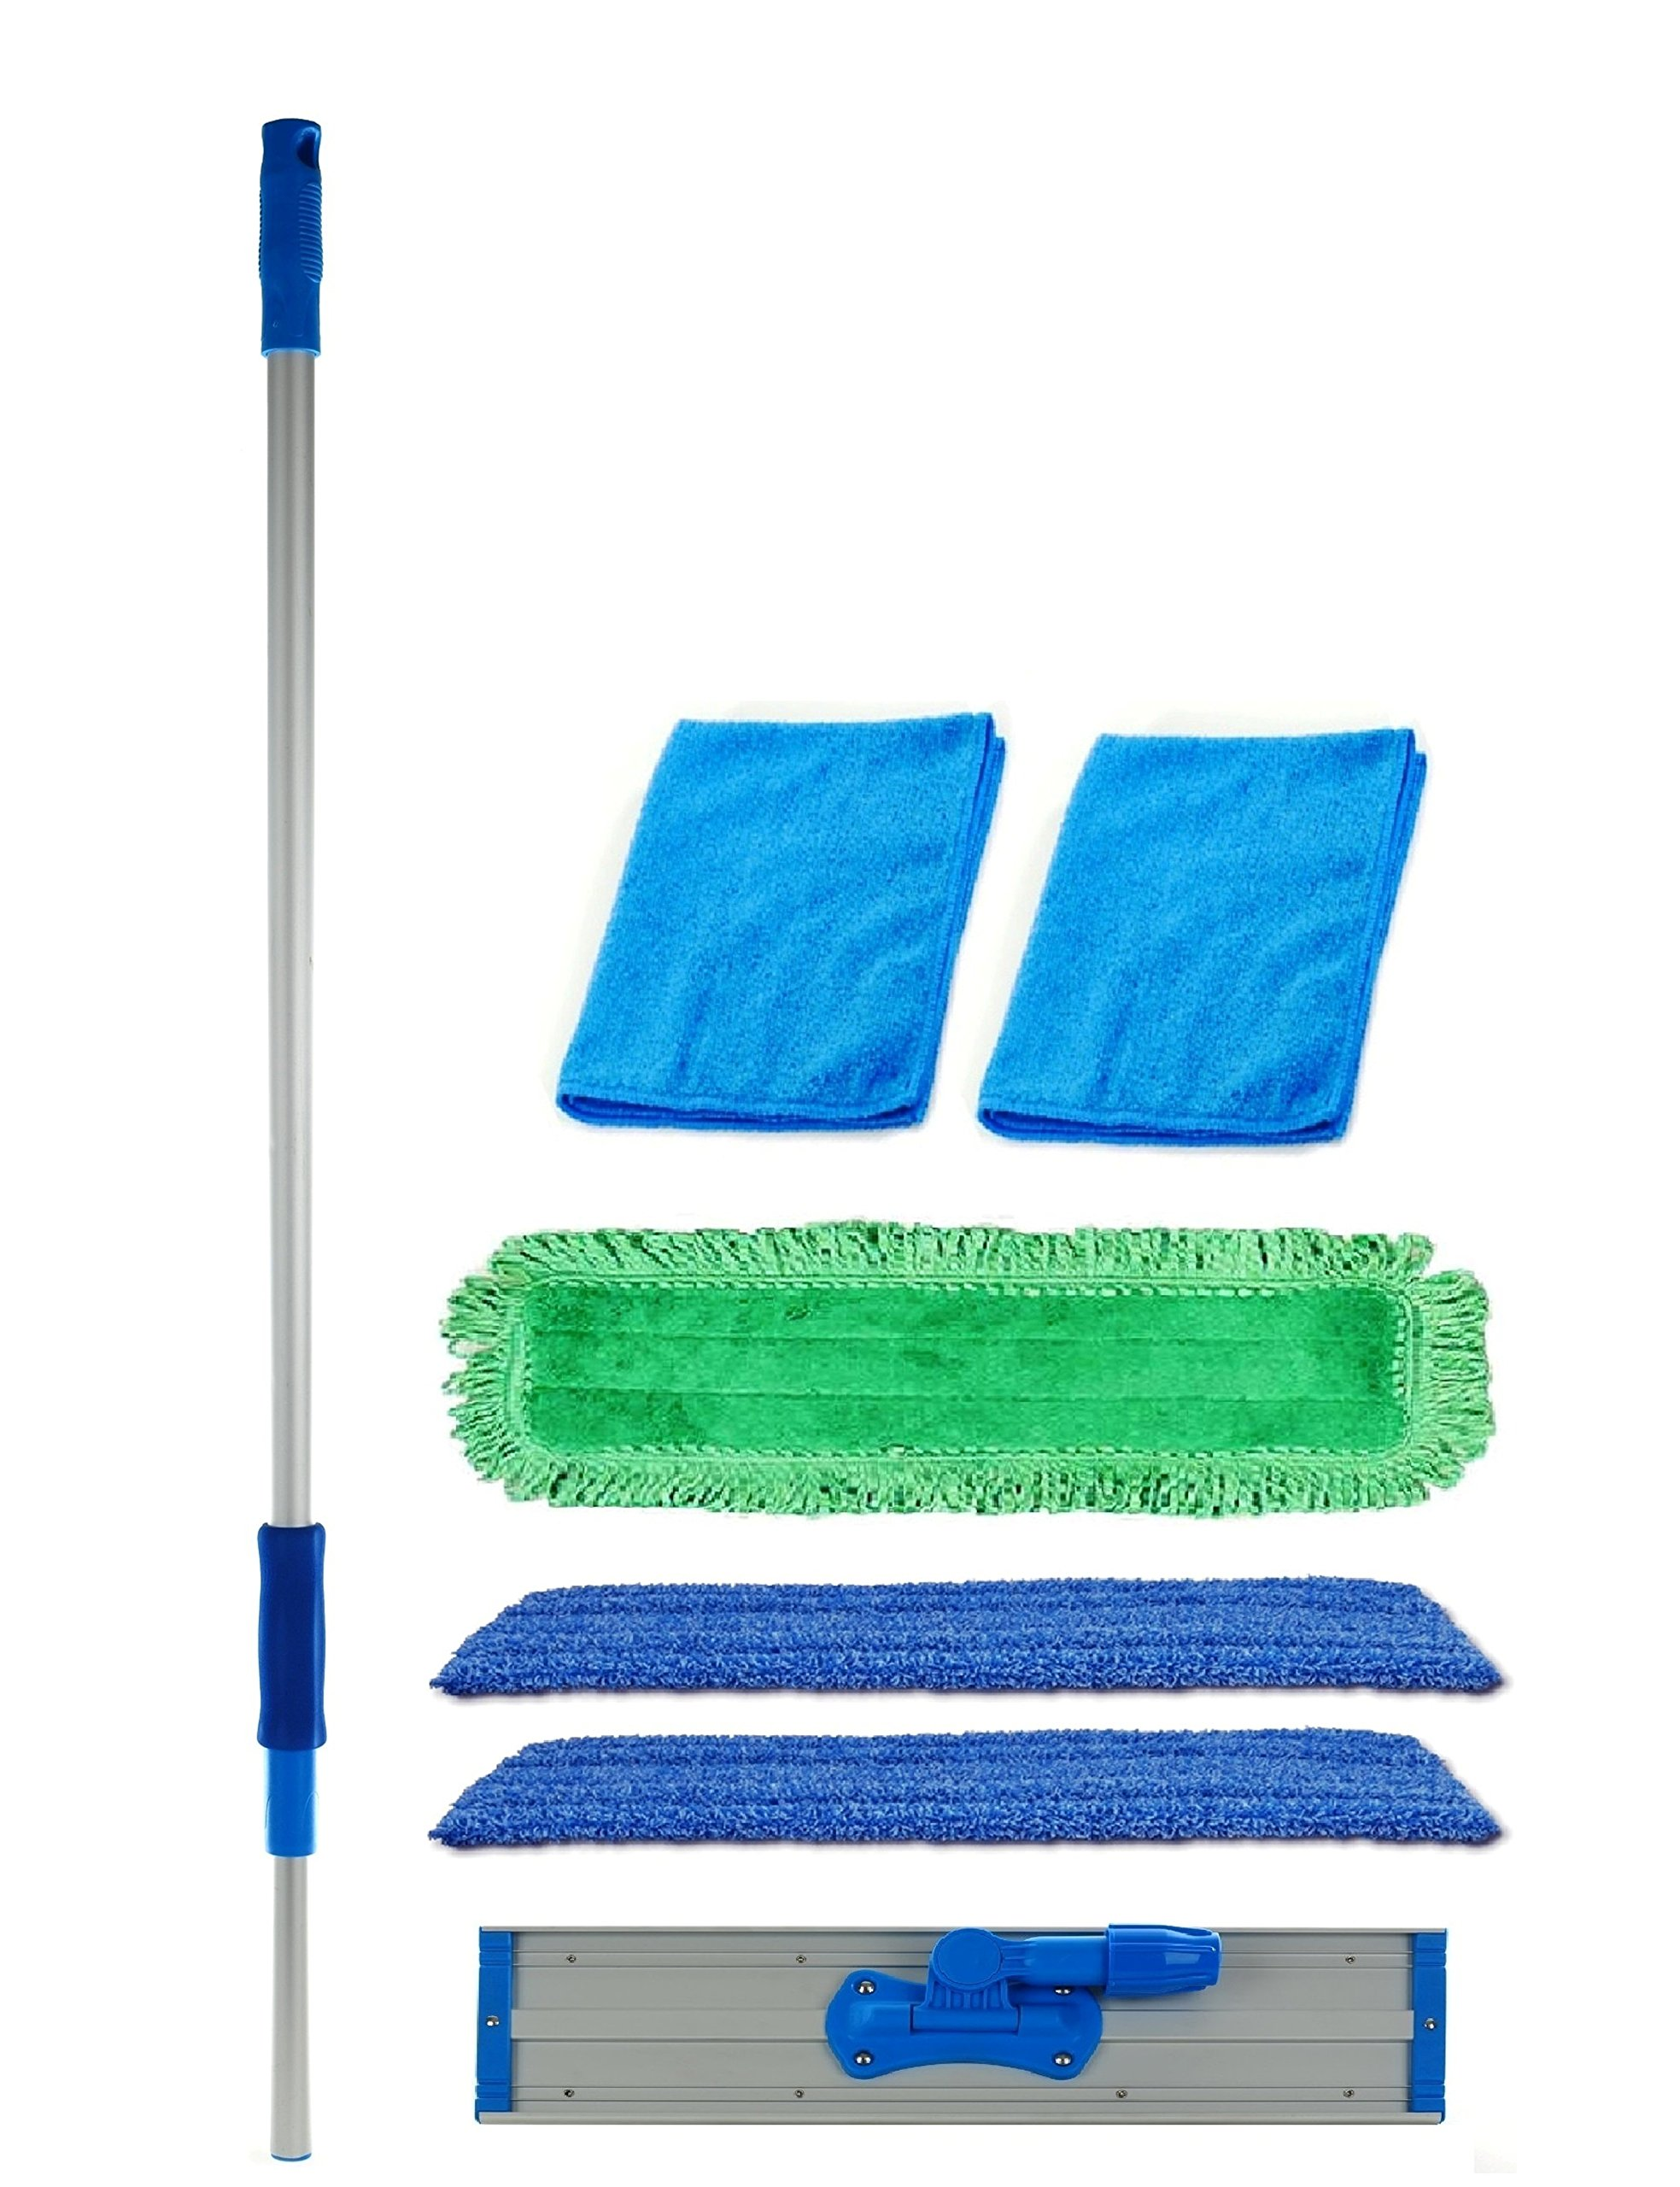 Real Clean 18 inch Professional Commercial Microfiber Mop With Three 18'' Premium Microfiber Mop Pads and 2 Bonus Microfiber Towels